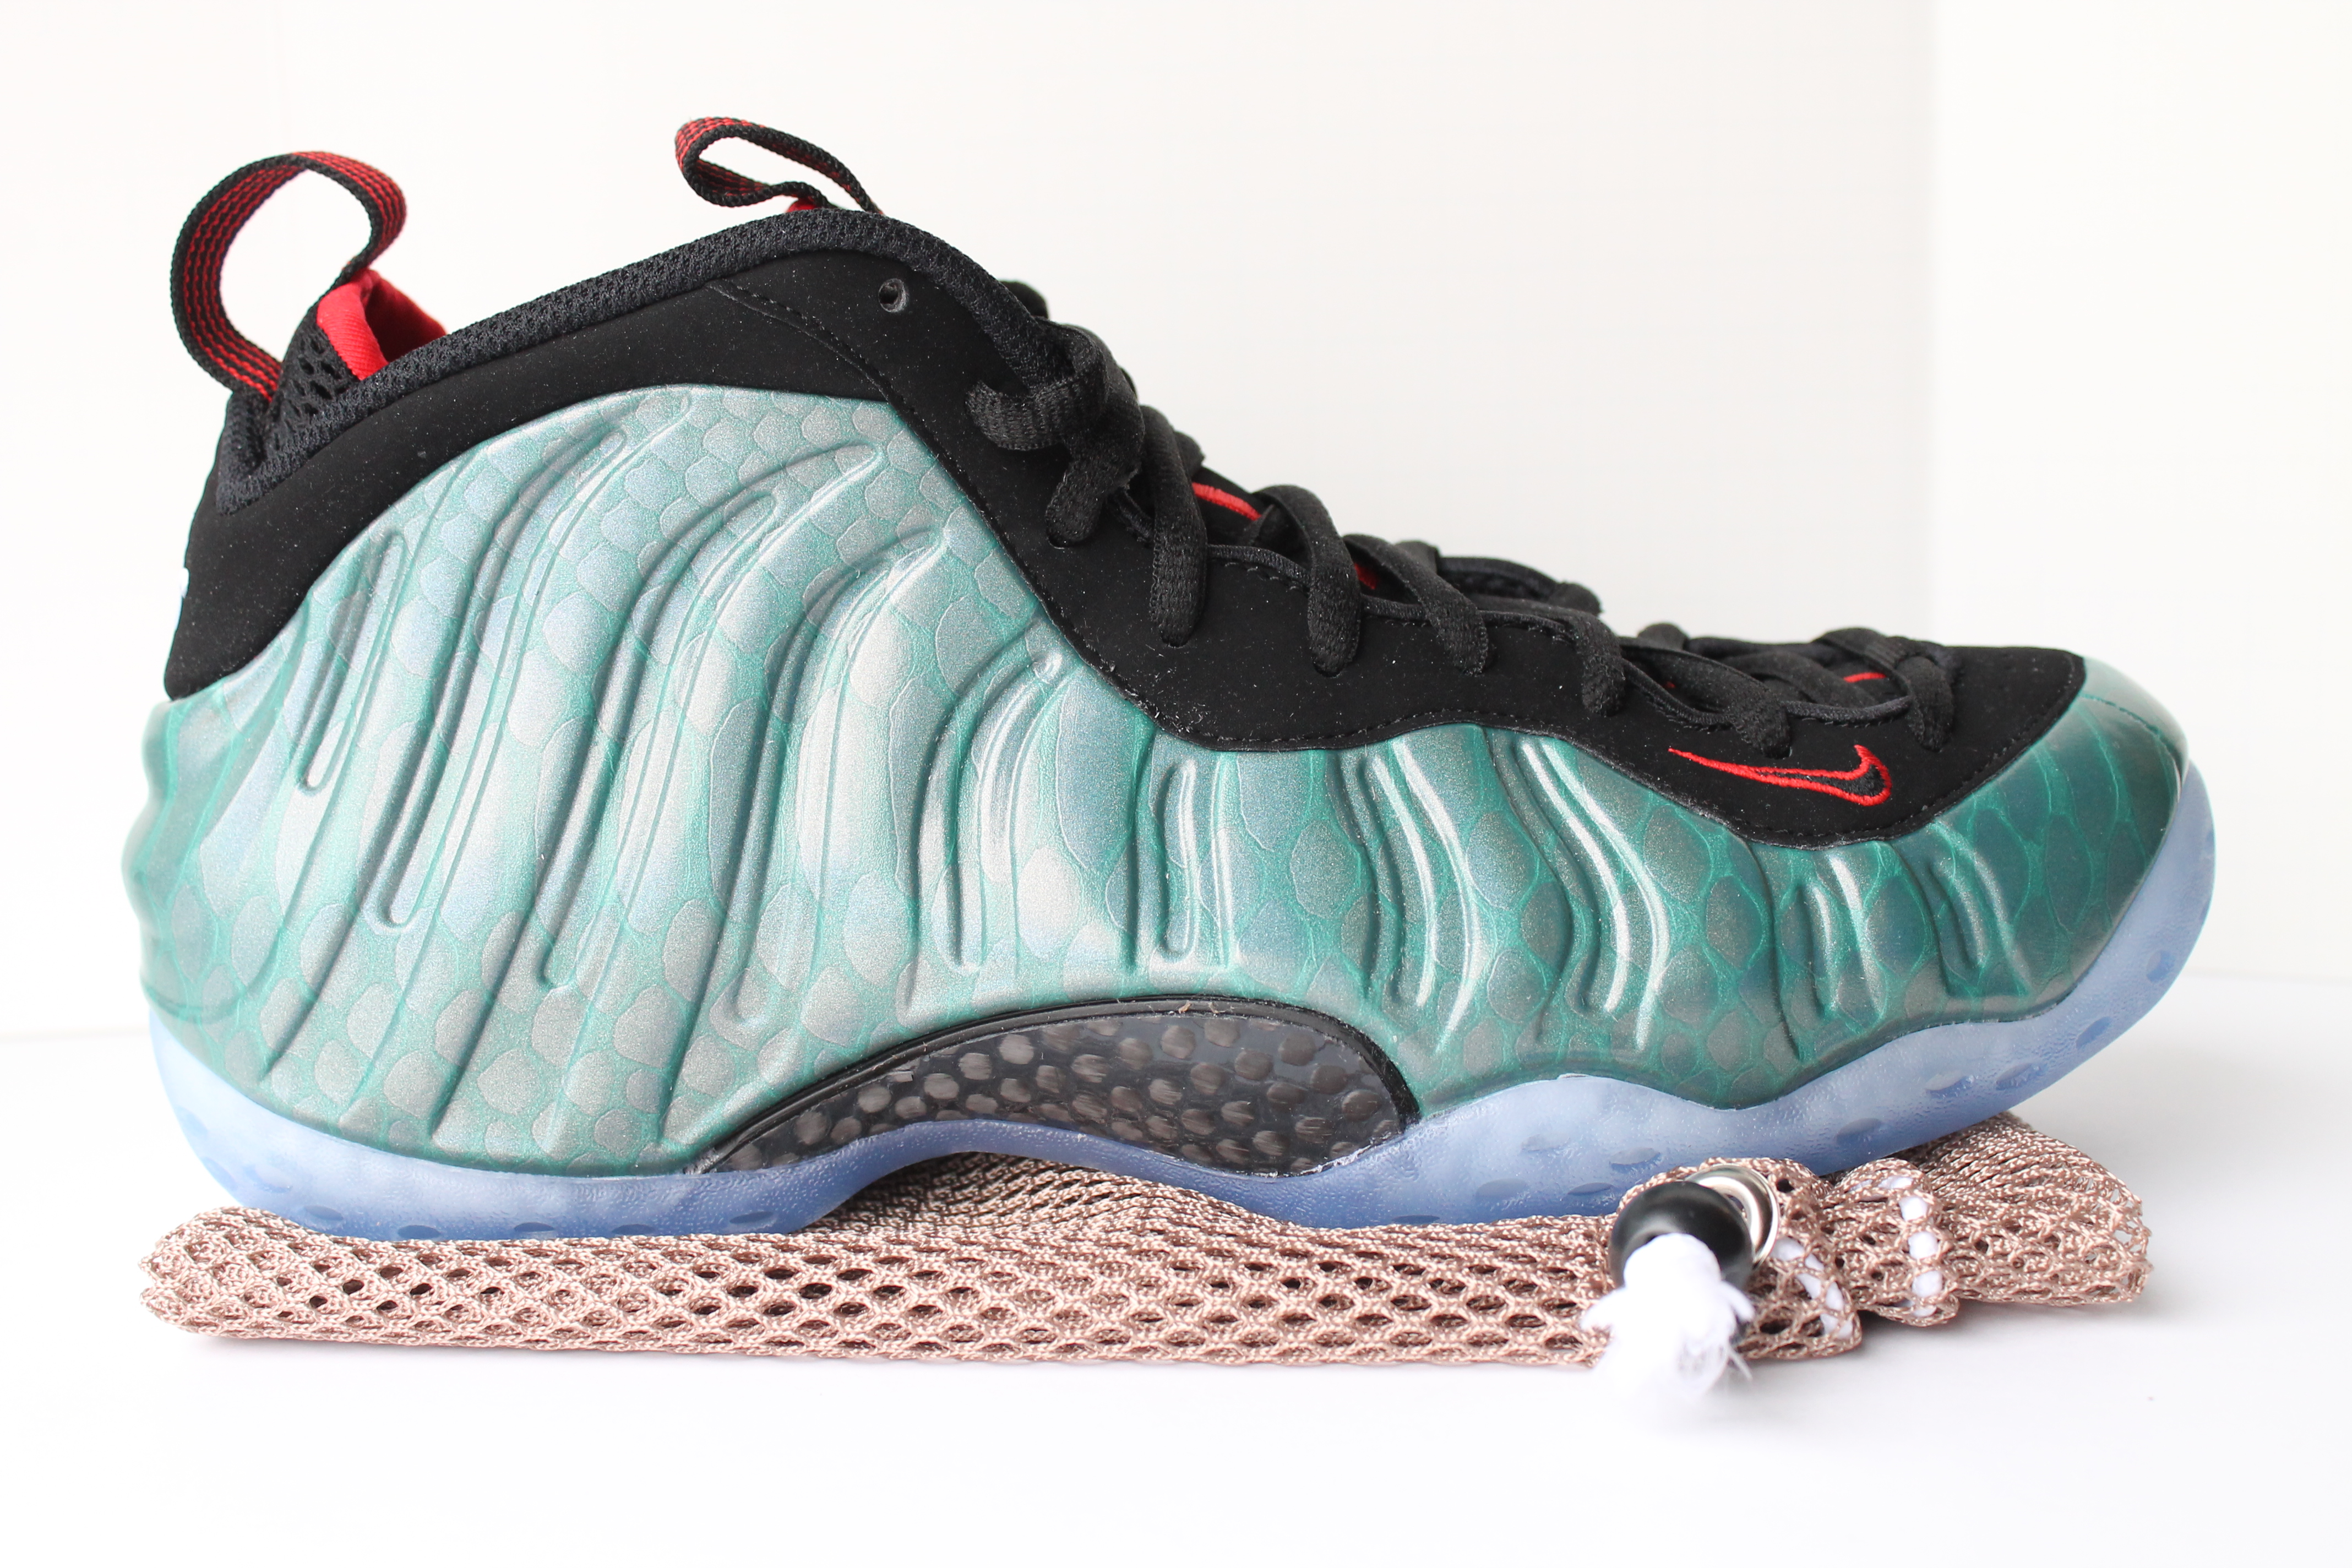 Nike Air Foamposite One Royal ??Sneaker News